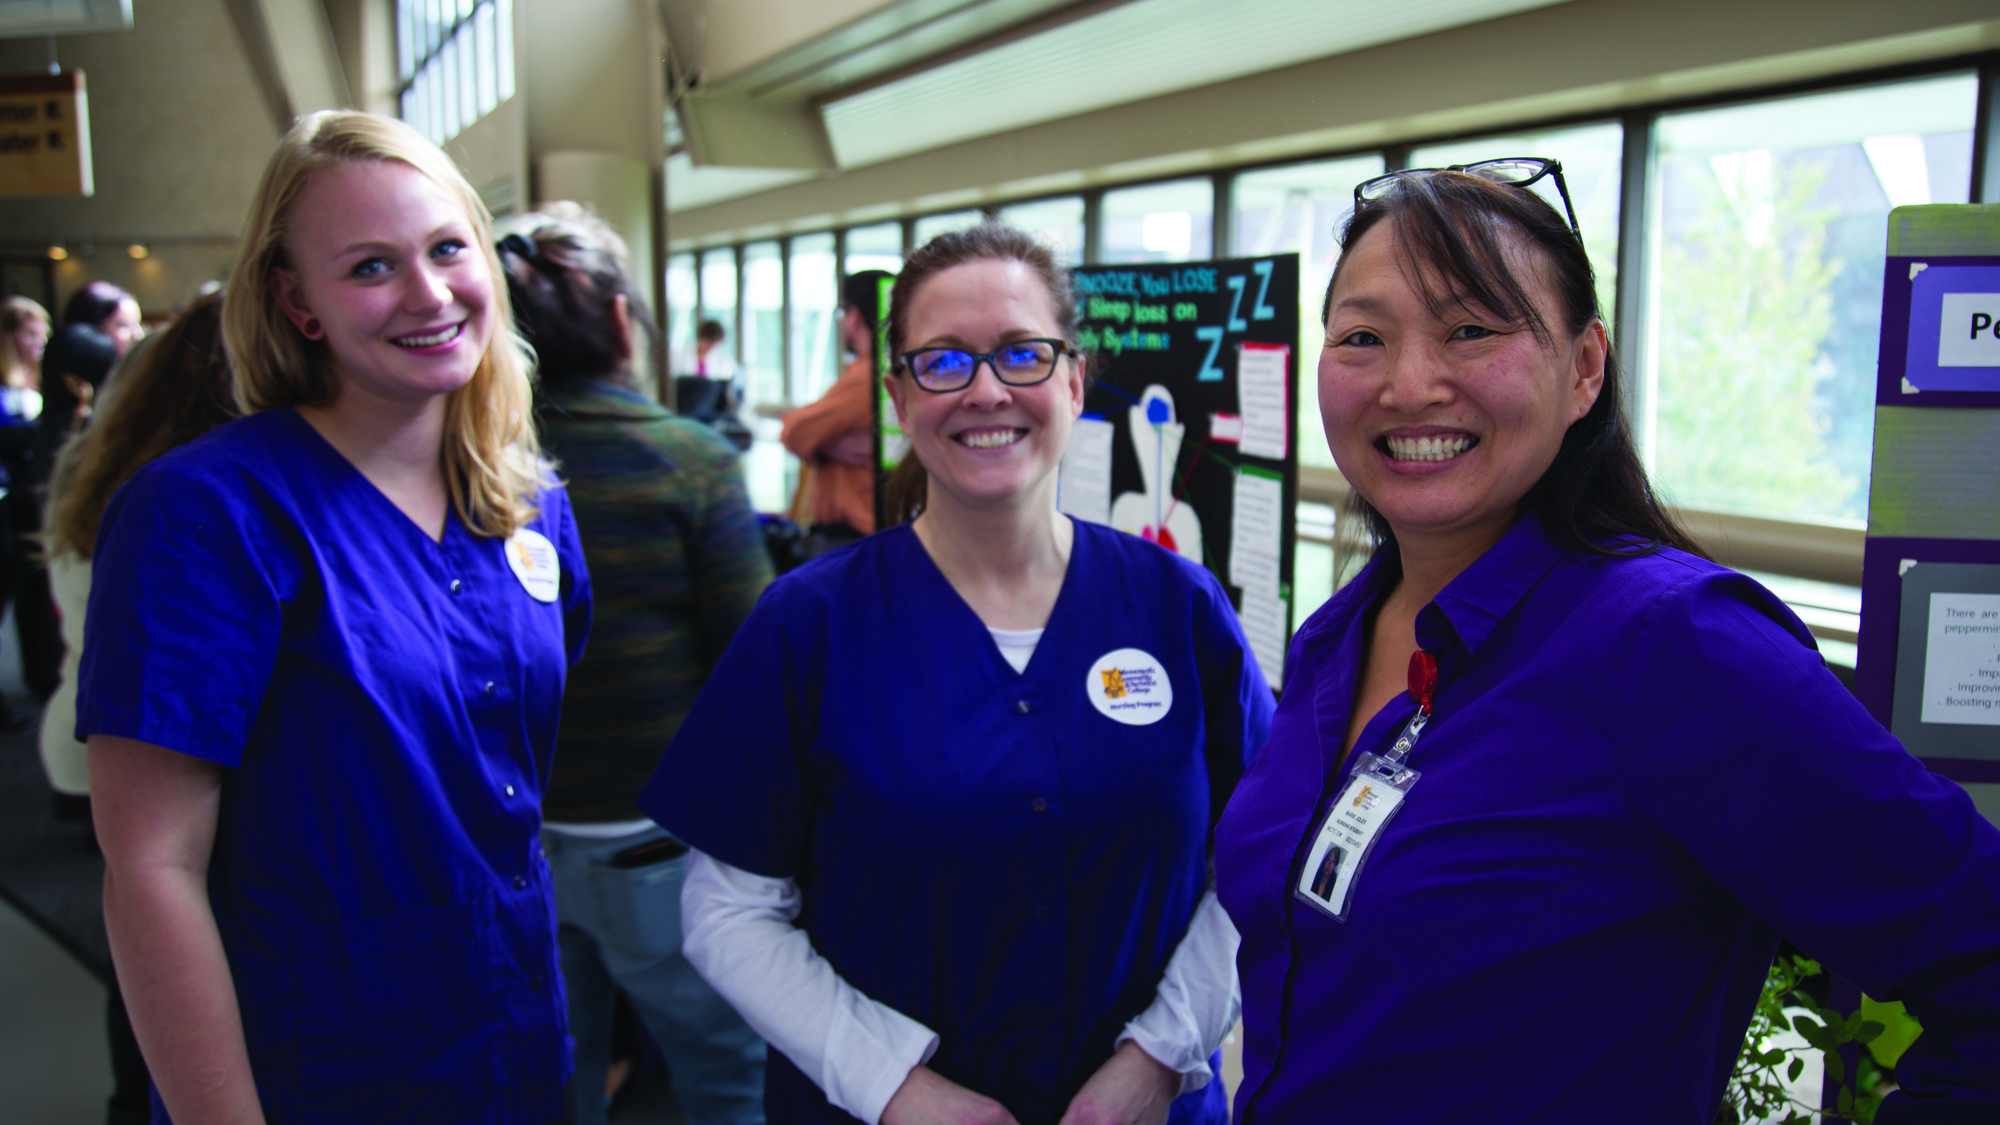 Nursing students Sarah Fagerness, Michelle Matzek, and Marie Joles were helping and handing out health educational materials. Photo credit: Kathryn Chadbourn